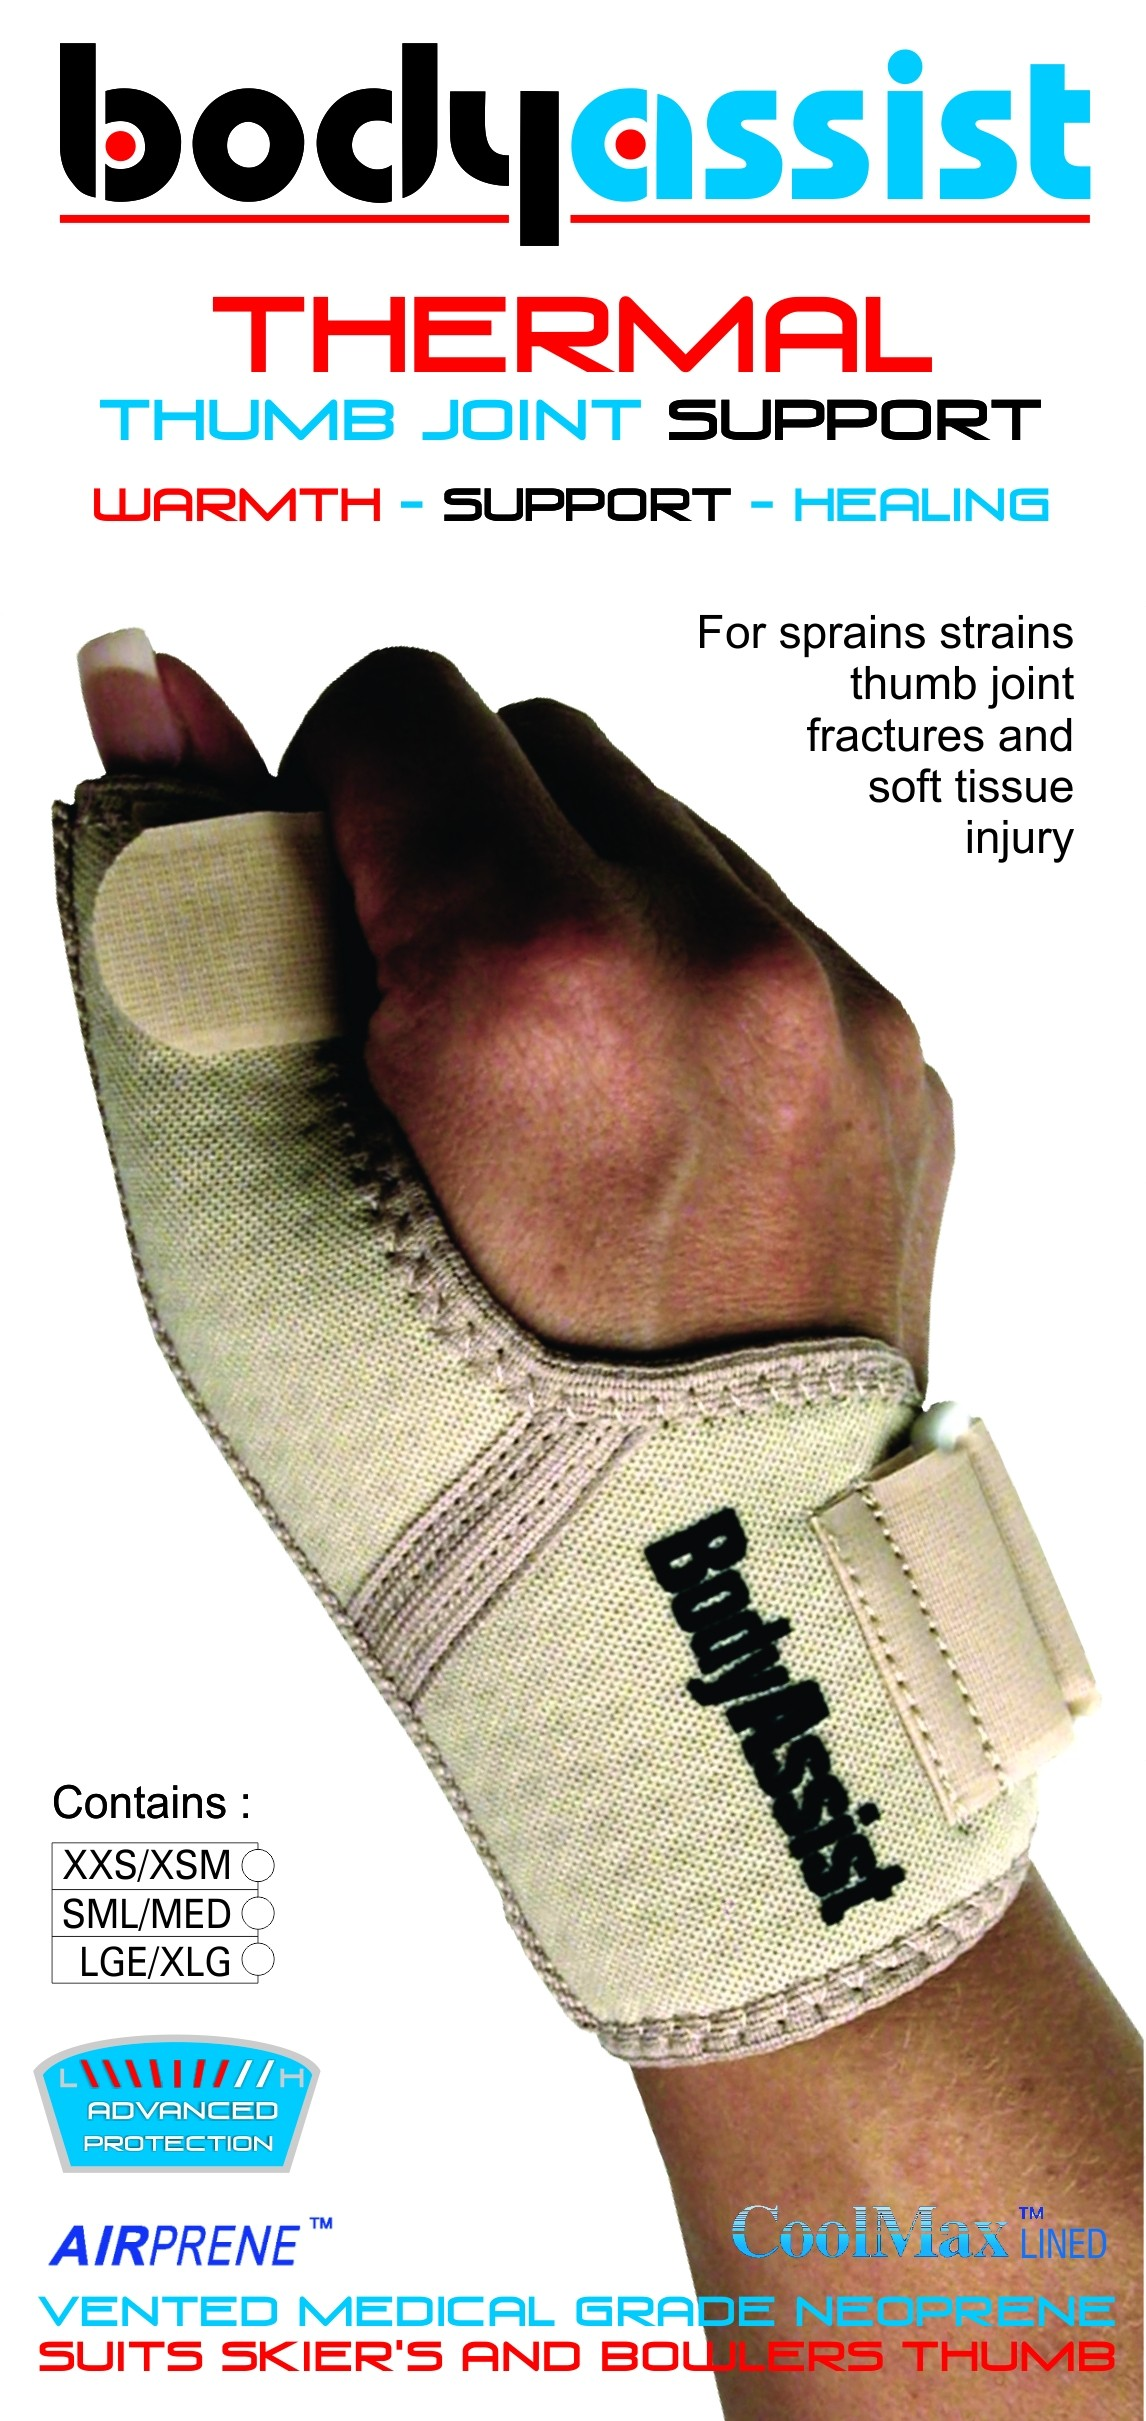 Thermal Thumb Joint Support